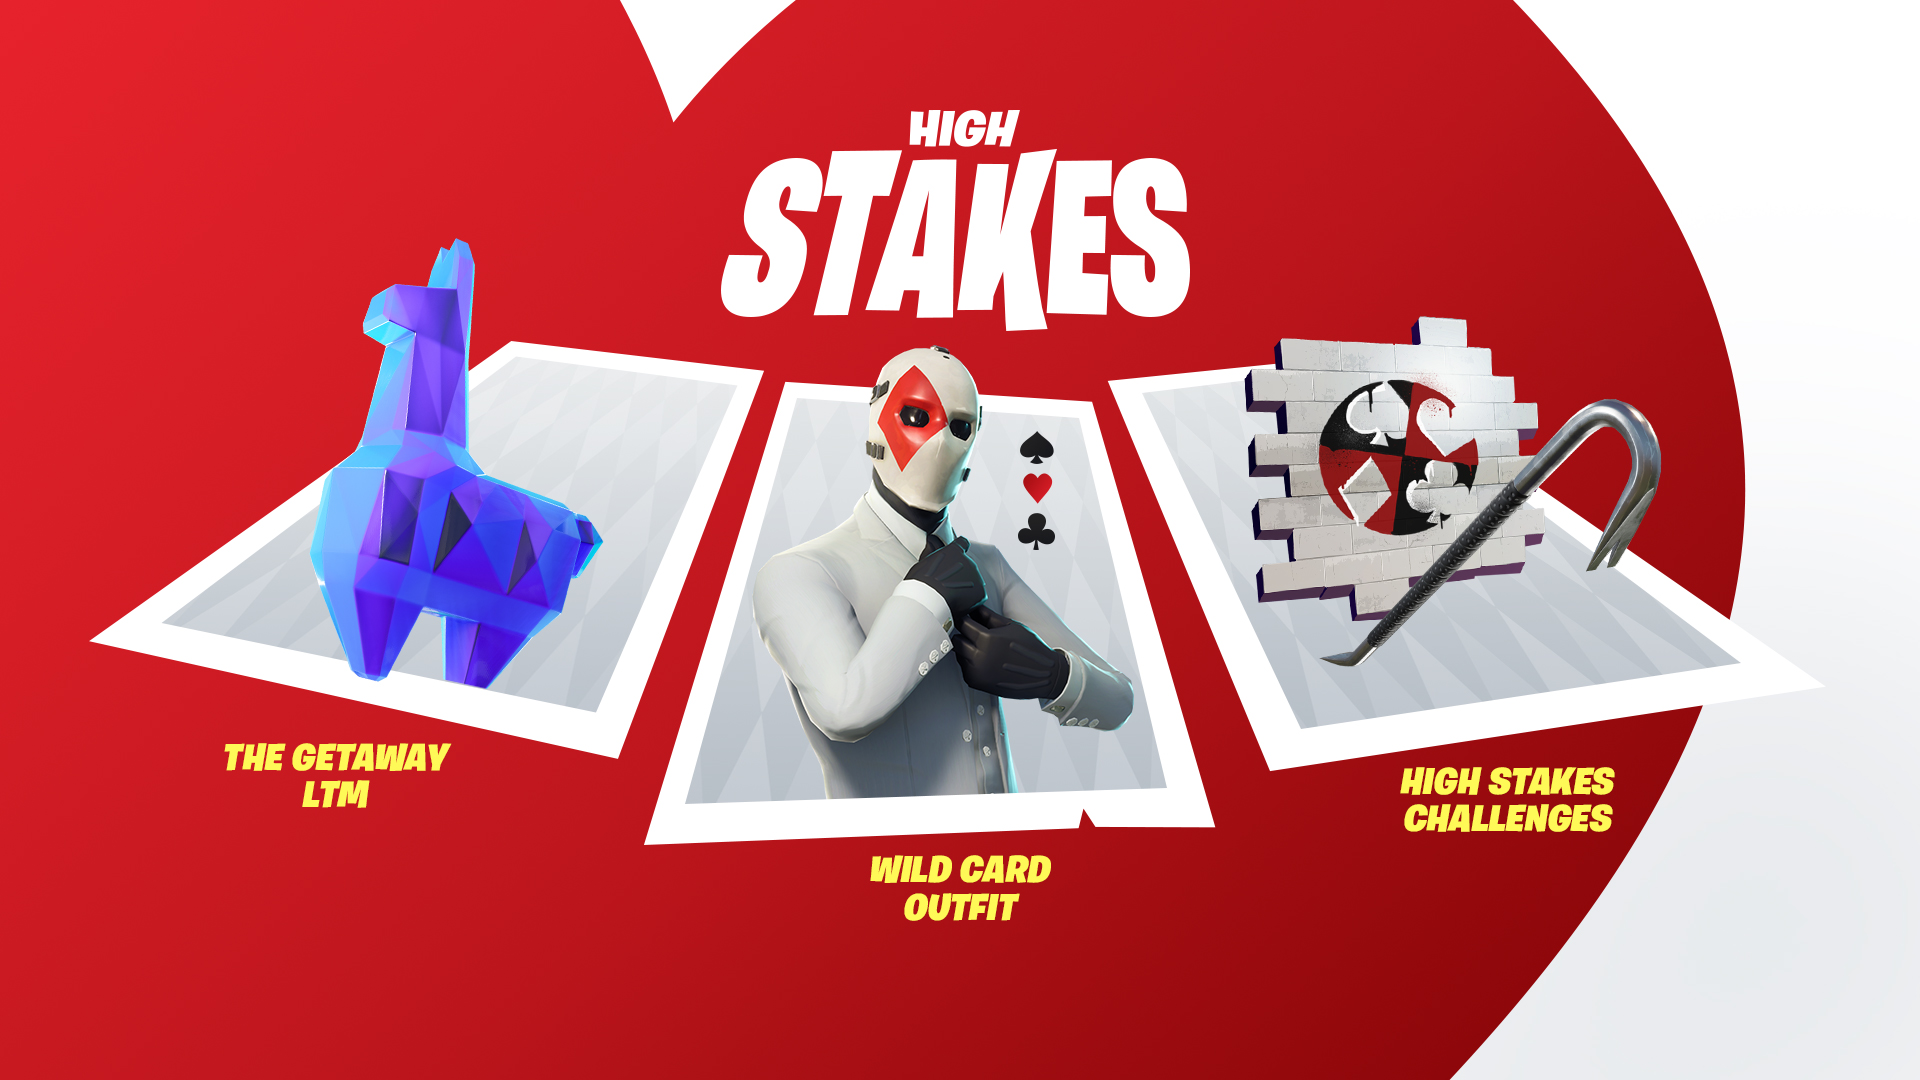 Fortnite gets exciting new game mode in special High Stakes event